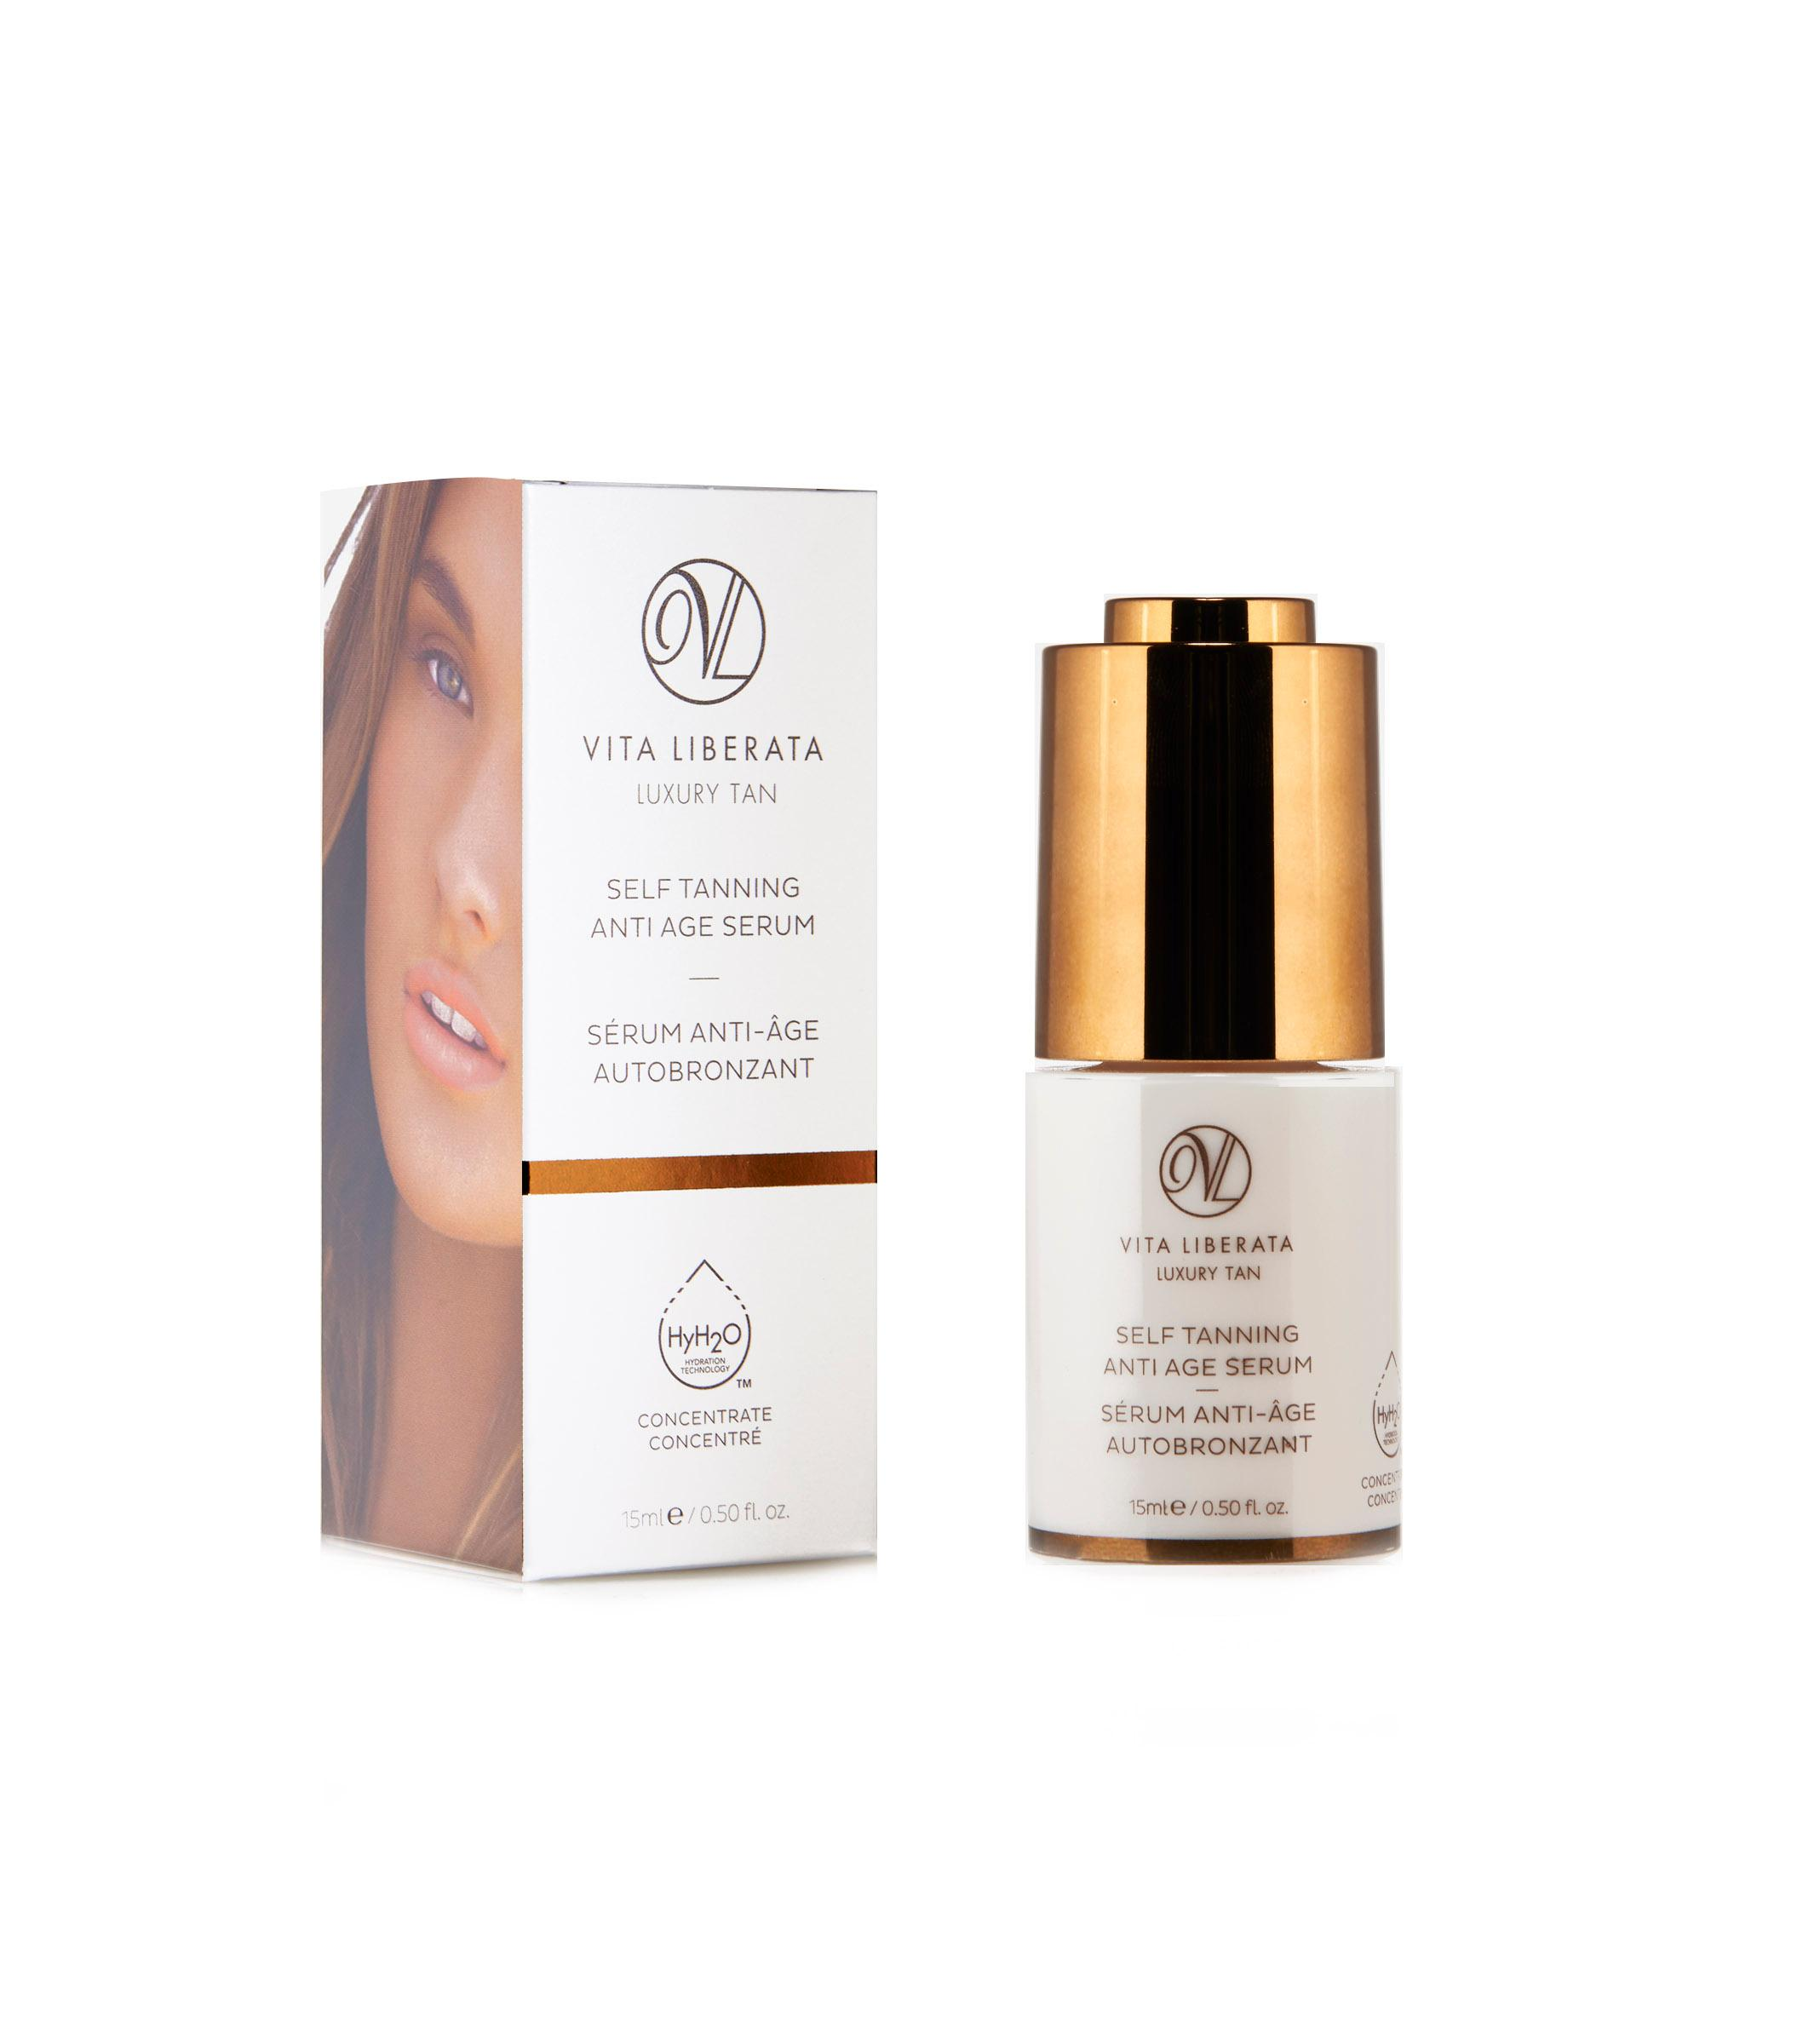 vita liberata self tanning anti age serum fl oz luxury beauty. Black Bedroom Furniture Sets. Home Design Ideas